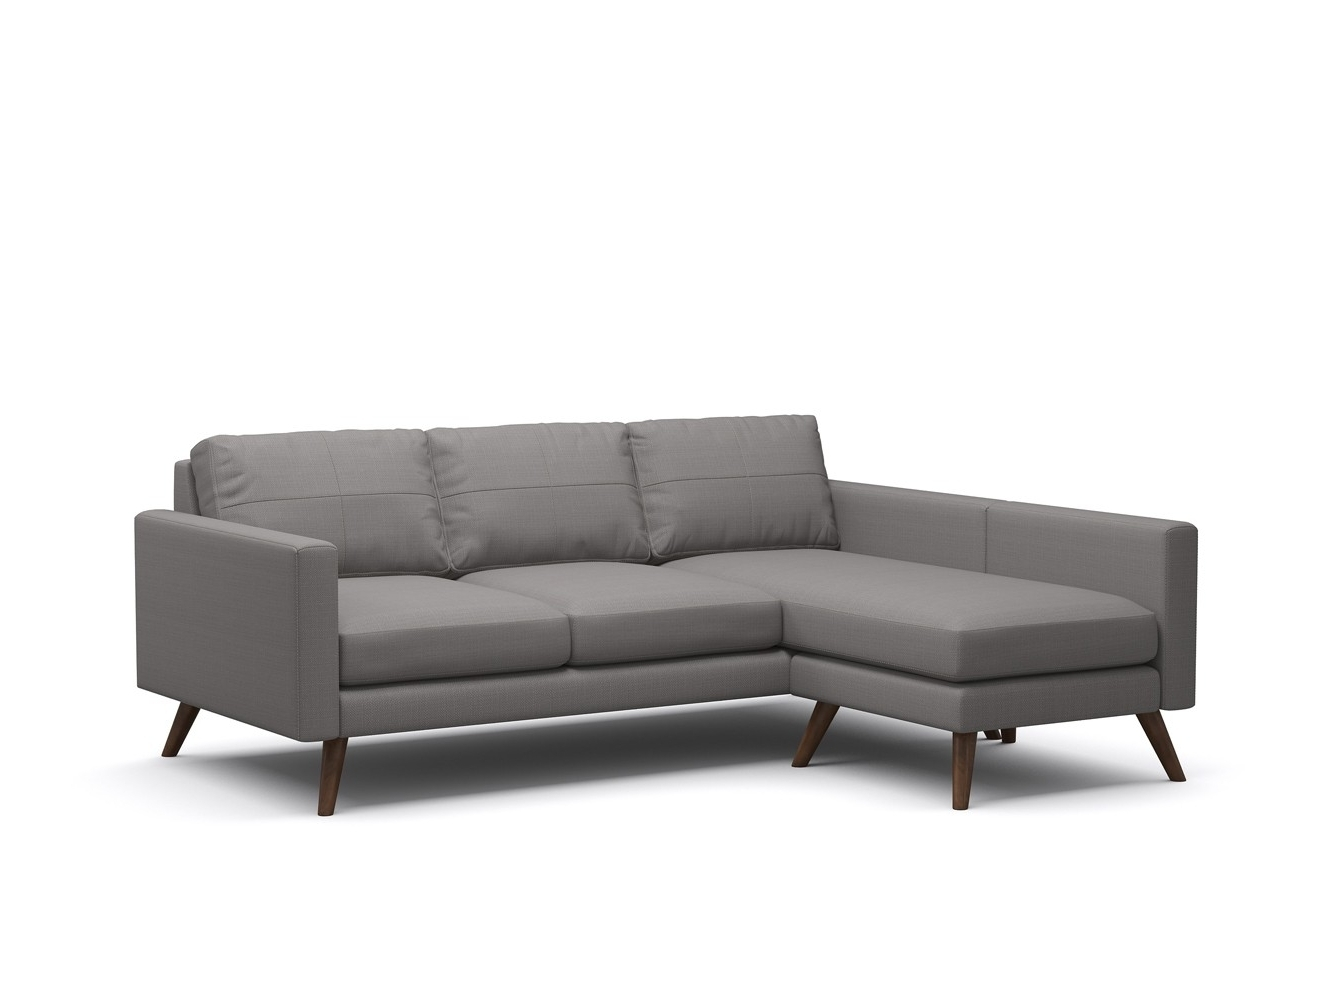 Apartment Sofas Throughout Most Recently Released Dane Apartment Sofa – Truemodern™ (View 3 of 20)